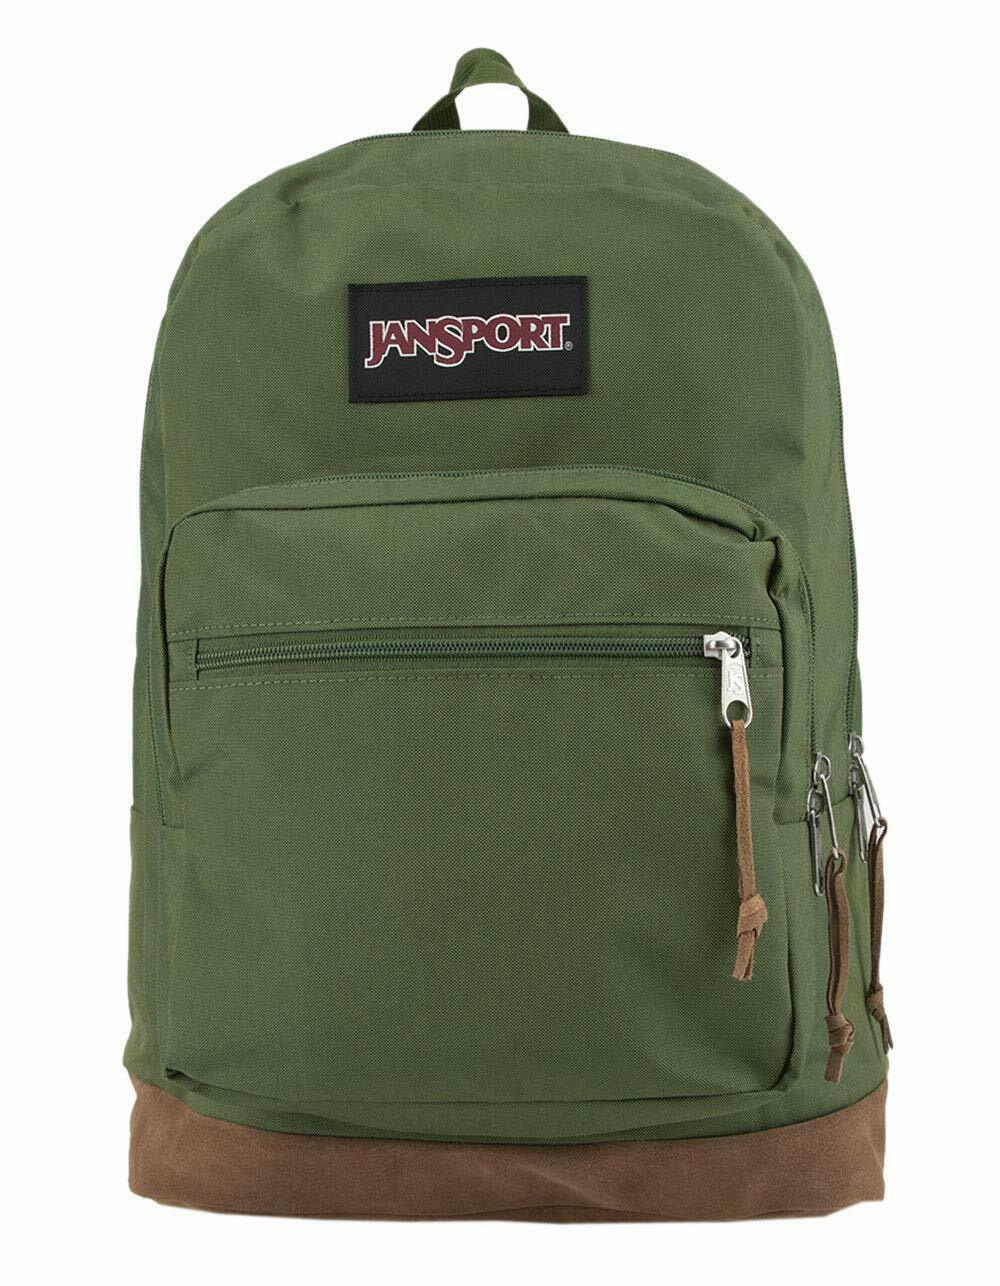 JanSport Right Pack Digital Edition Laptop Backpack New Olive Yarn-dye - $57.98